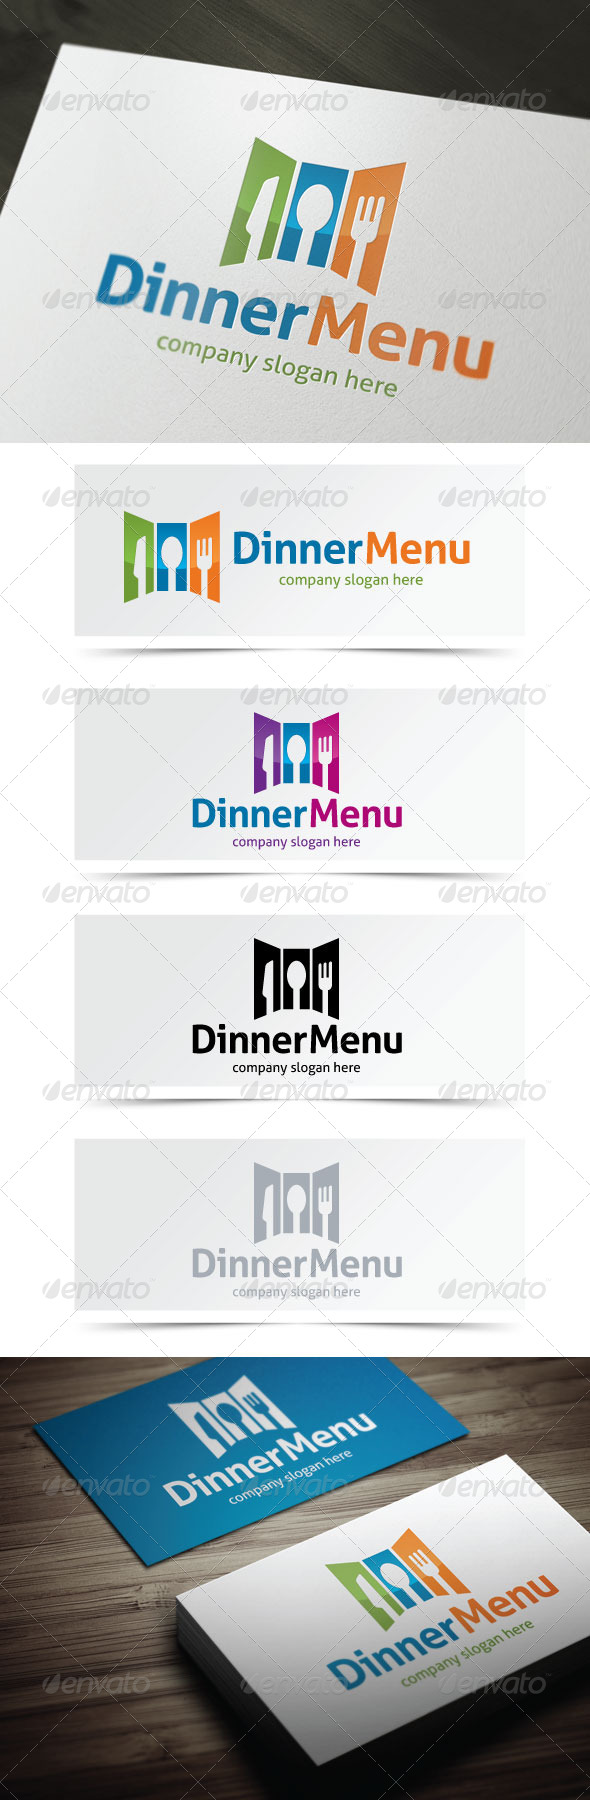 GraphicRiver Dinner Menu 5189099